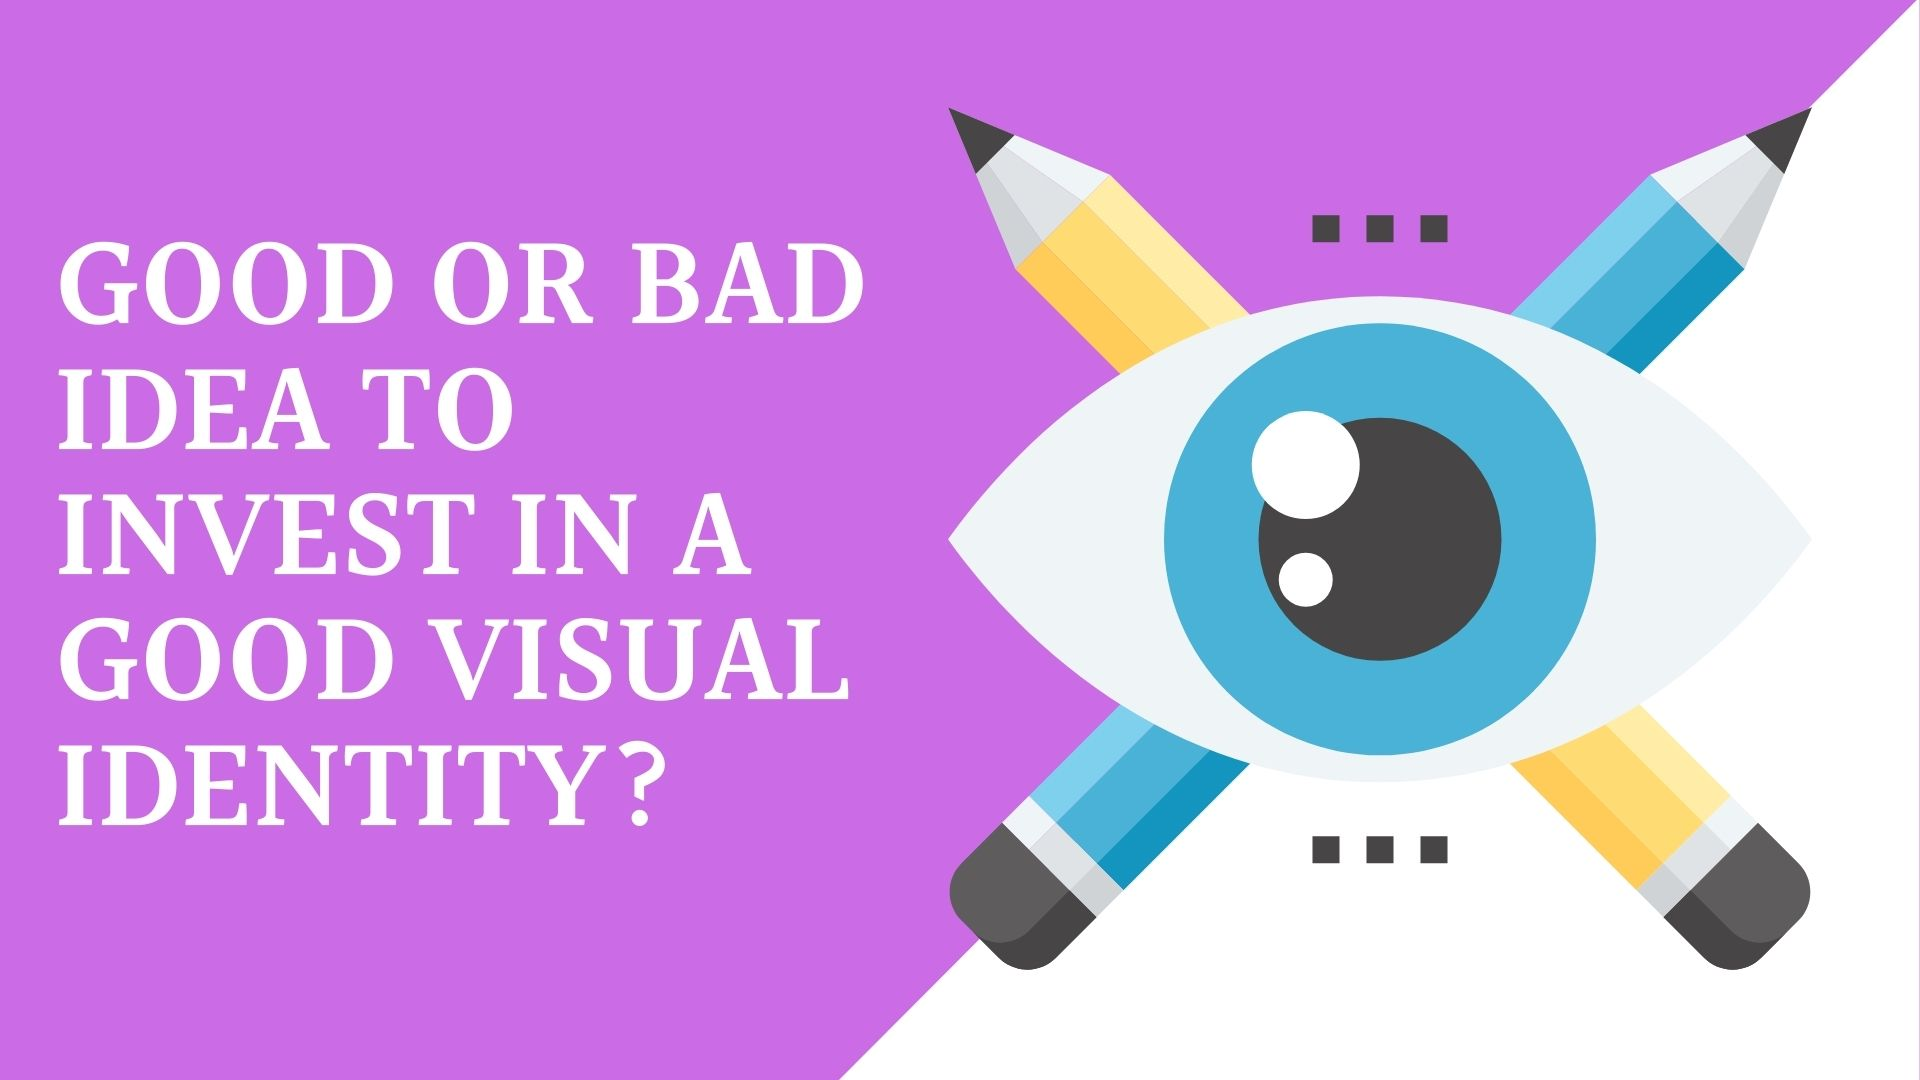 Good Or Bad Idea To Invest In A Good Visual Identity?